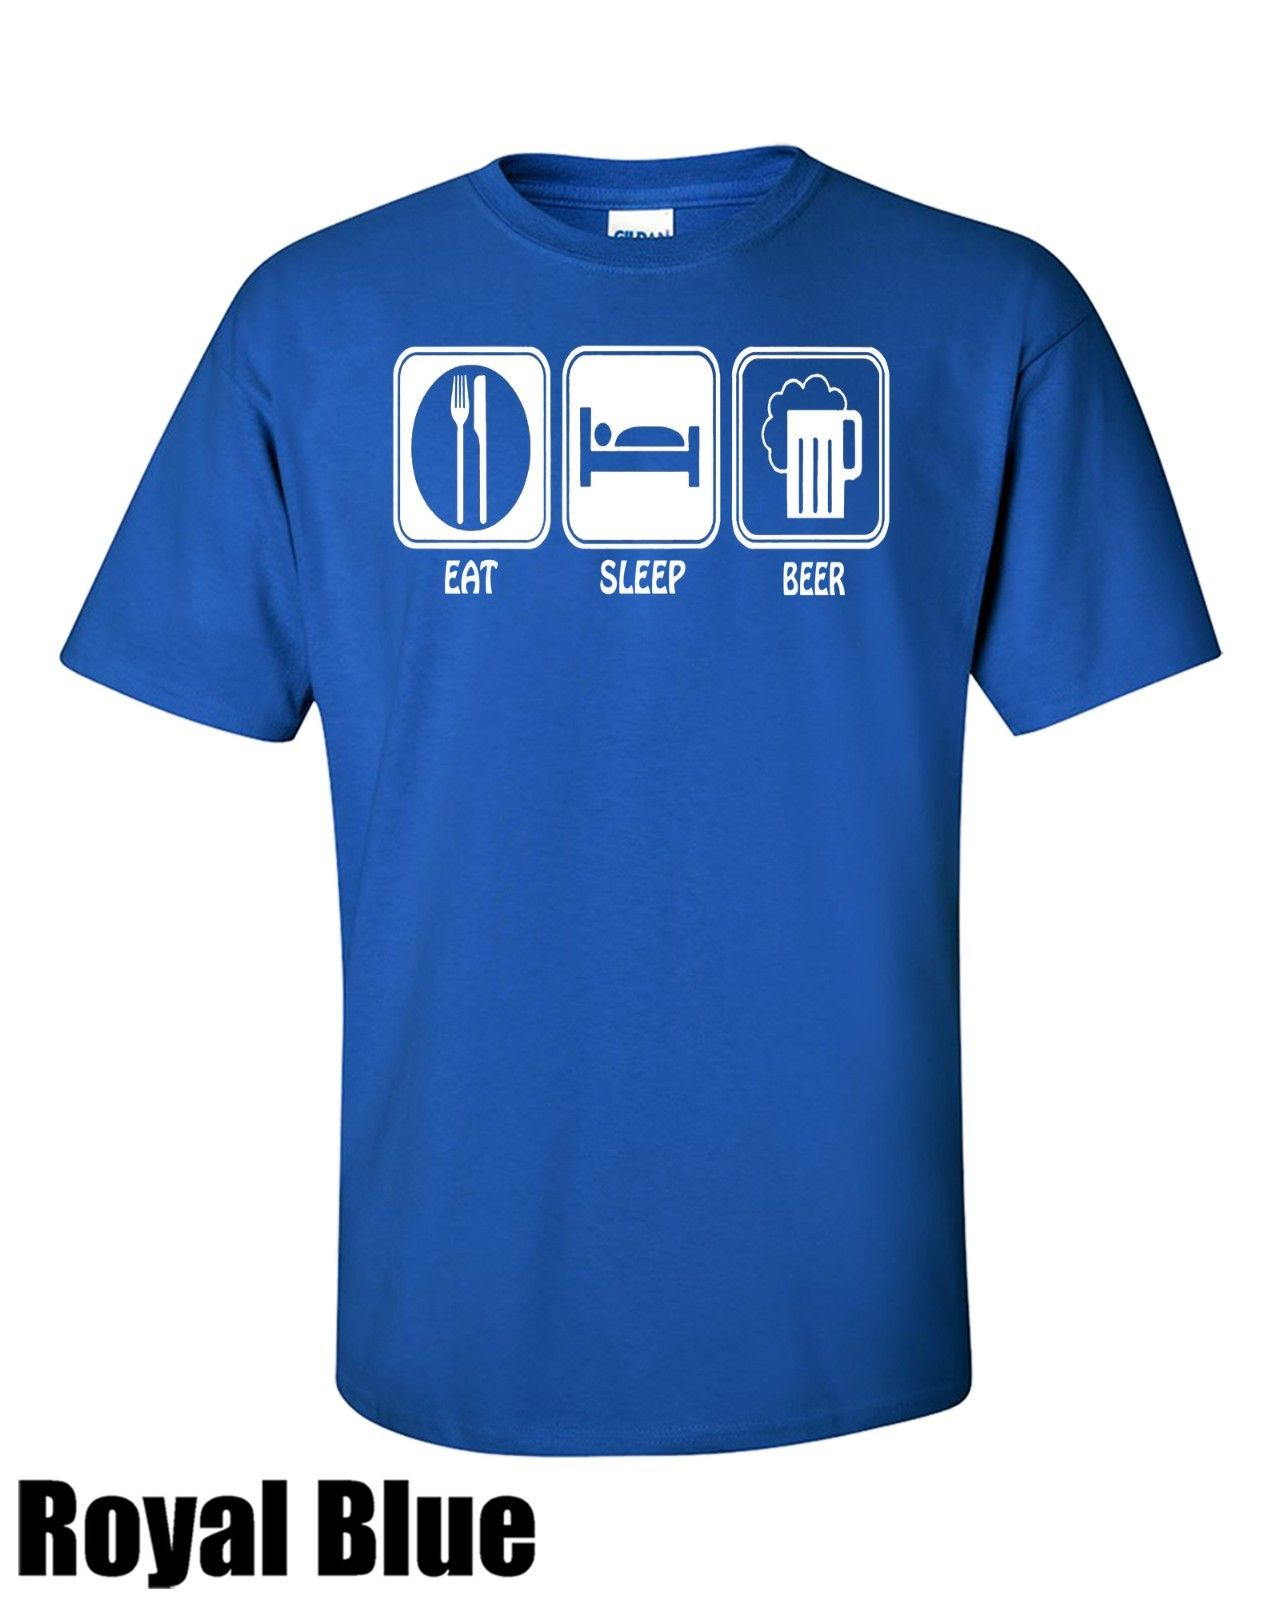 Eat. Sleep Beer T Shirt All col and Sizes Cotton New Funny Tops Tee Unisex 2018 Arrival MenS Fashion